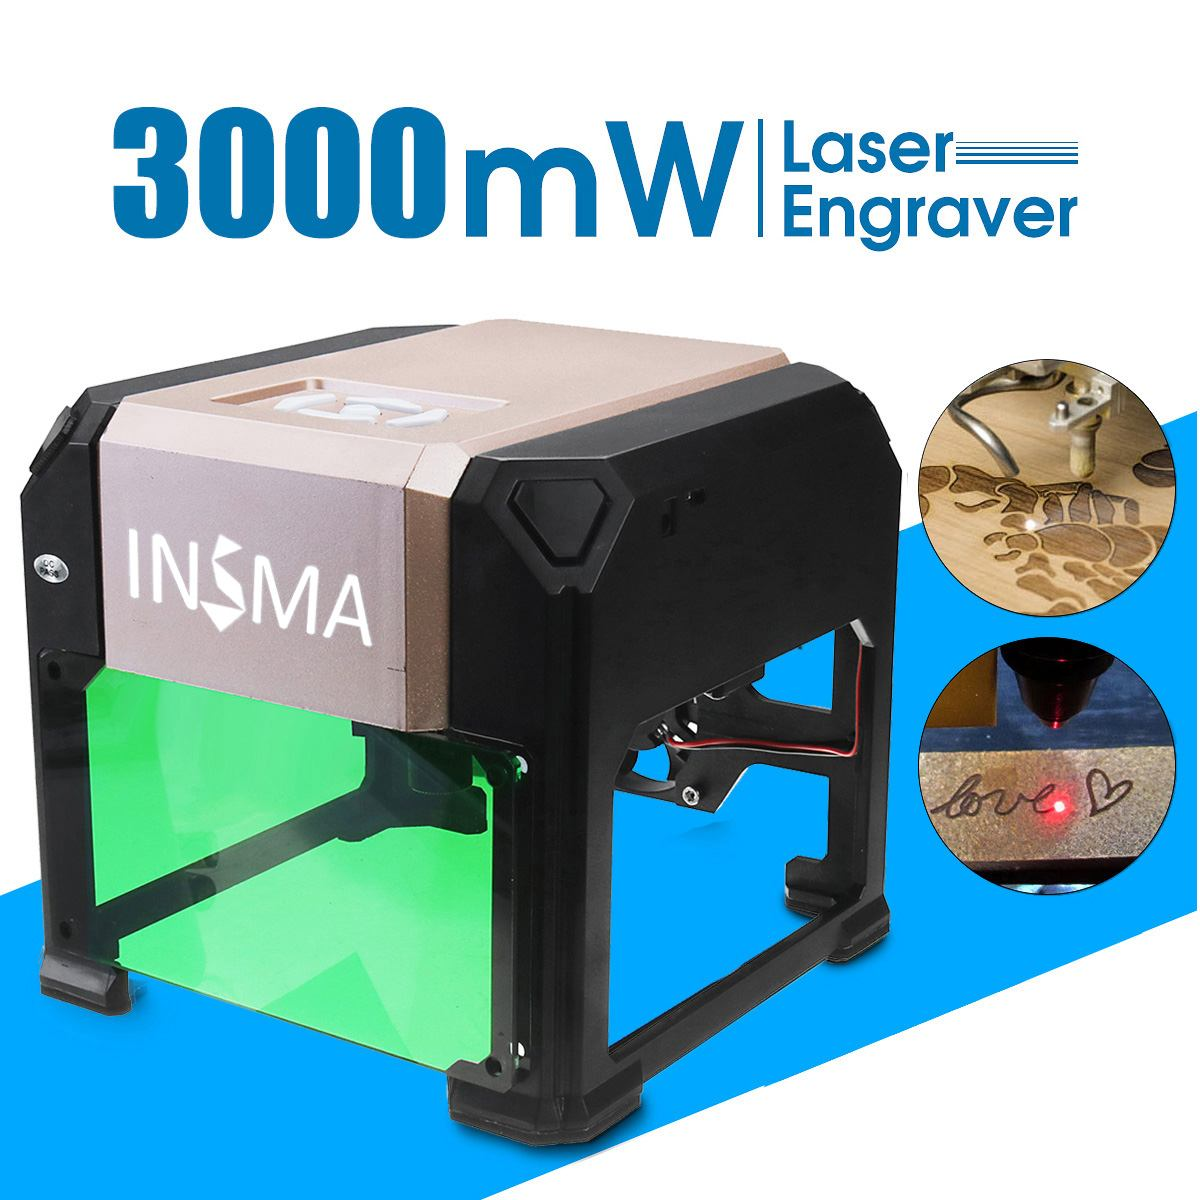 3000 MW CNC Laser Engraver DIY Logo Mark Printer Laser Engraving Carving Machine For Home Use 80x80mm Engraving Range